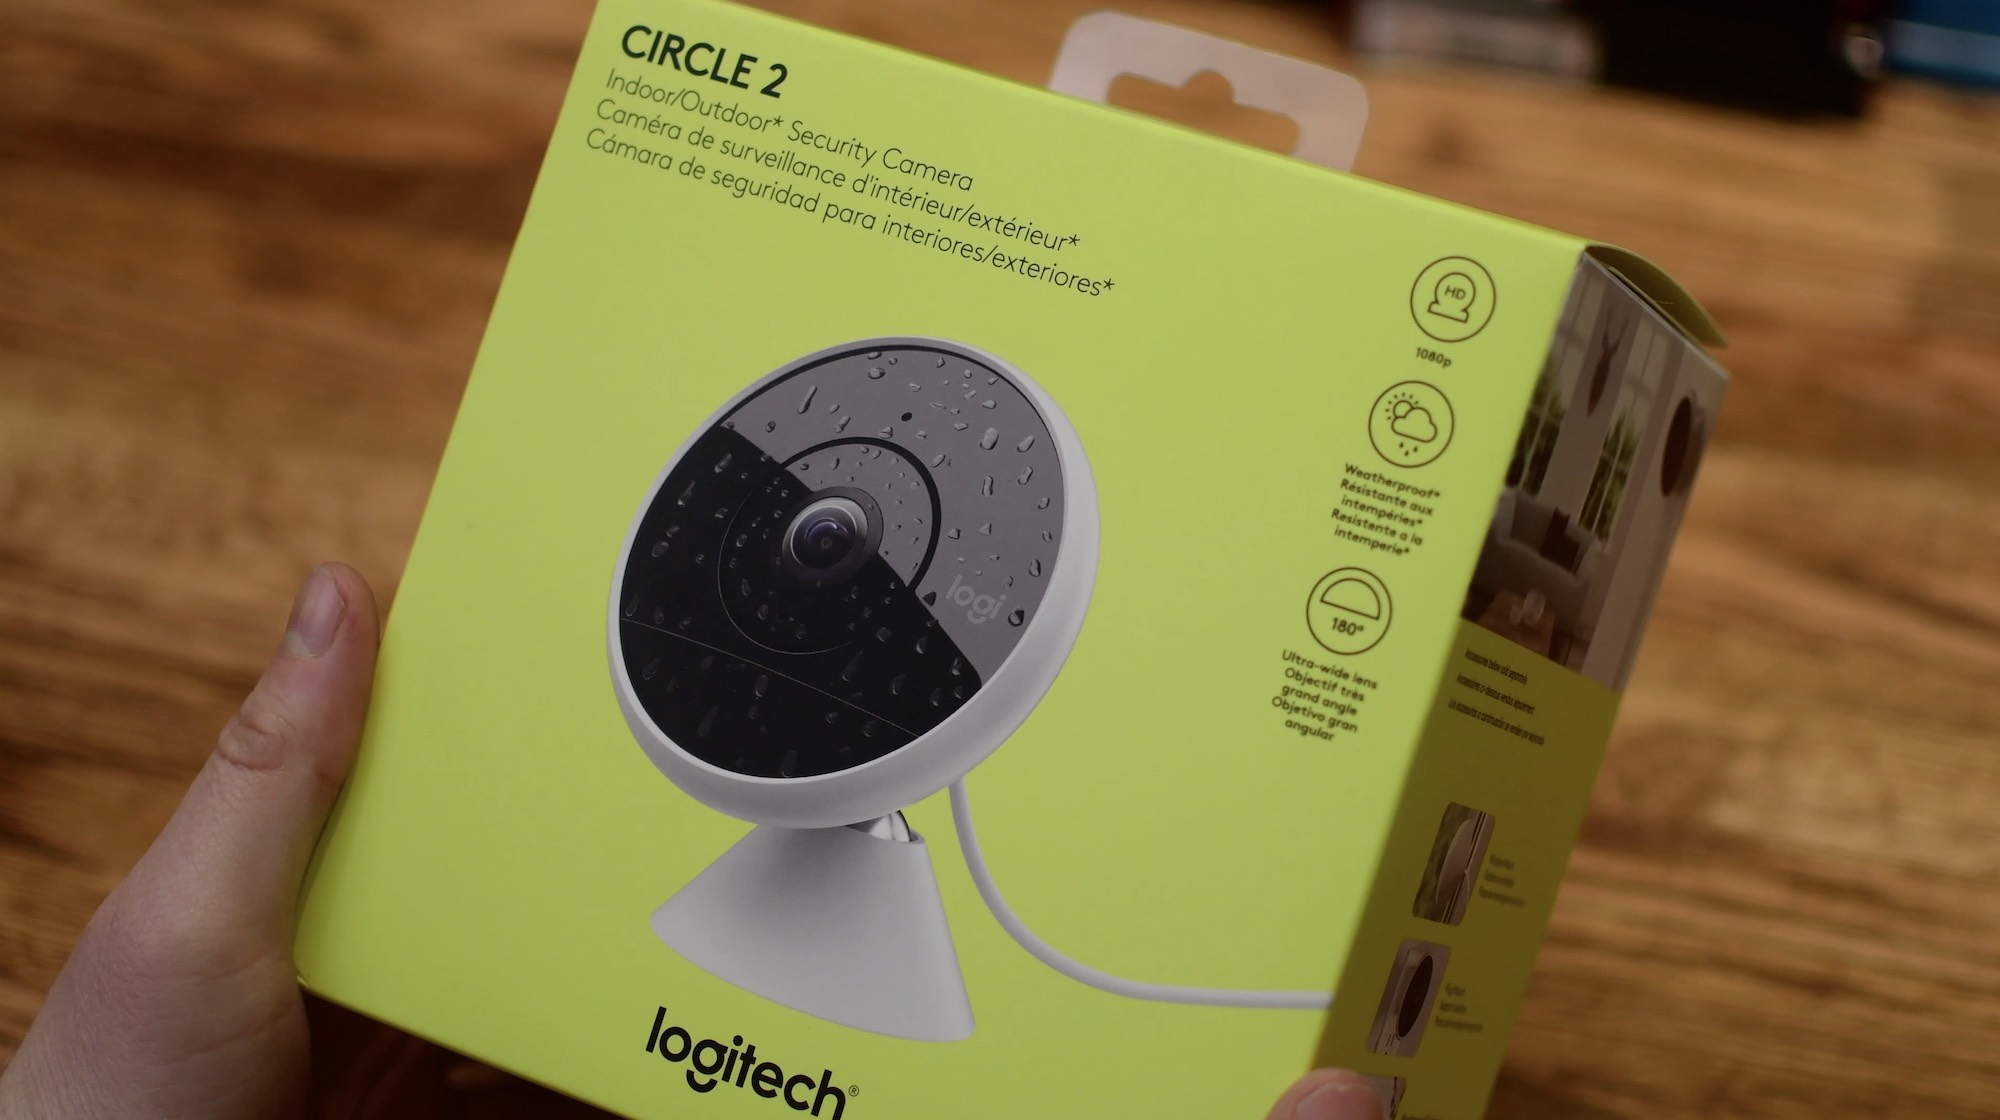 Camera Exterieur Ring The Logitech Circle 2 Home Security Camera Is The Best Homekit Cam